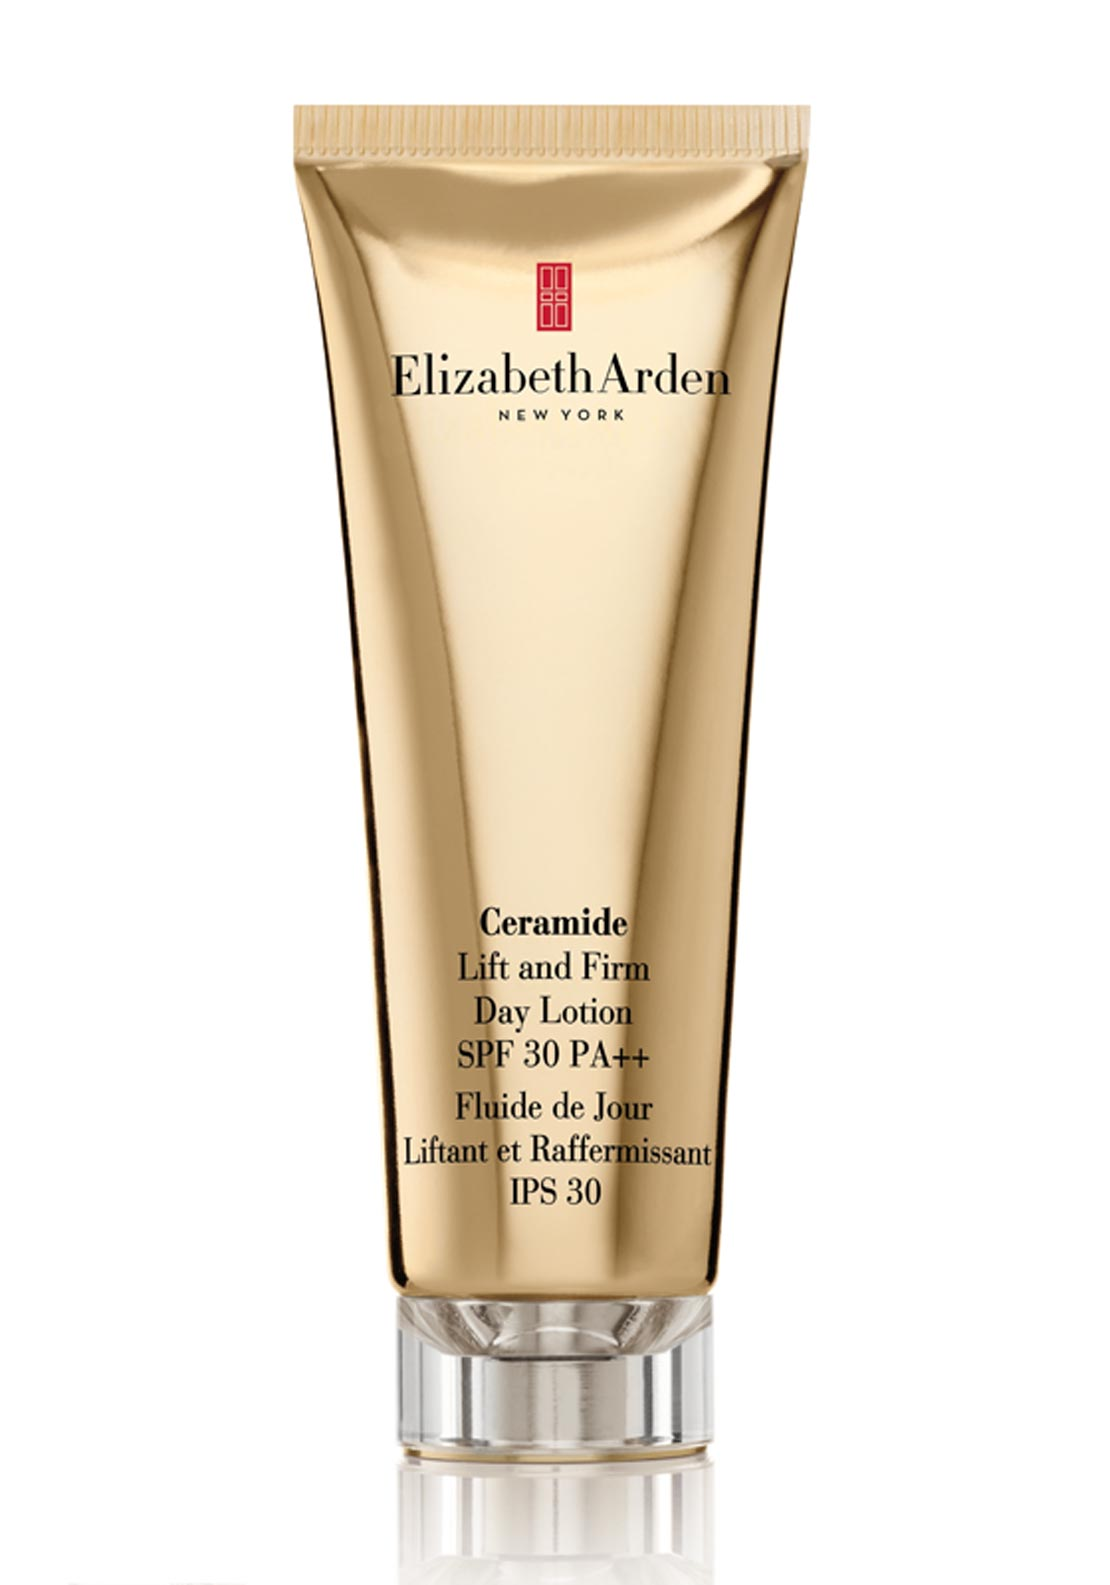 Elizabeth Arden Lift and Firm Day Lotion, 50ml